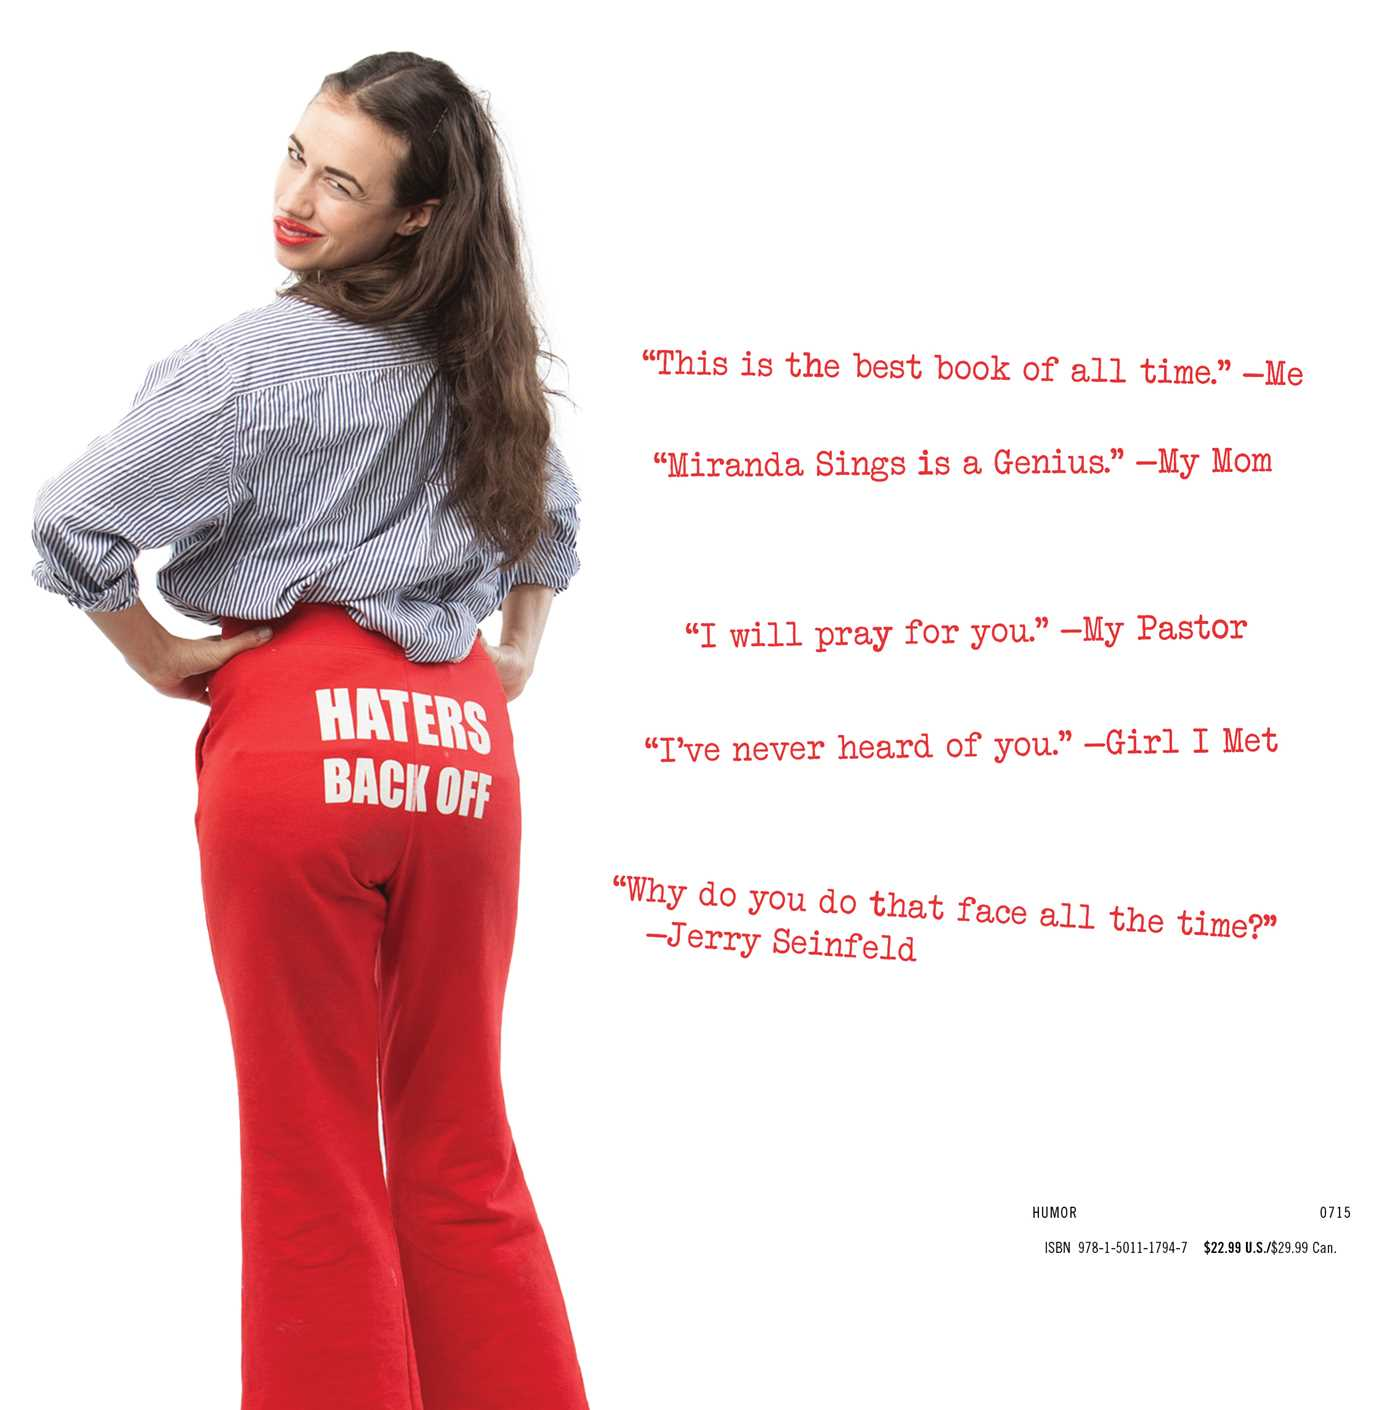 Selp Helf Book By Miranda Sings Official Publisher